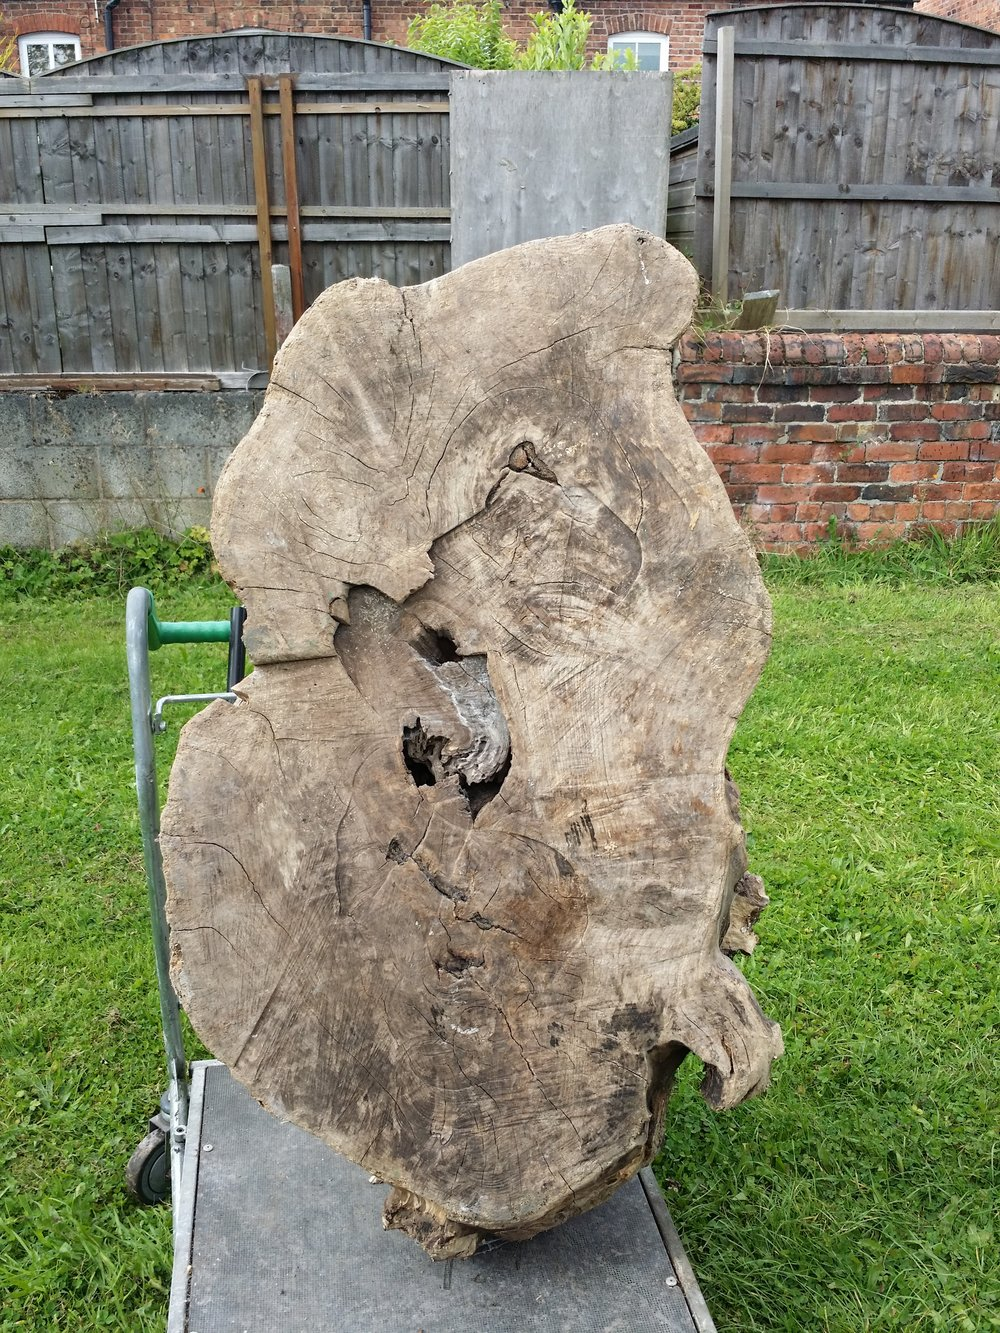 Janes memory table pre working the table base (4).jpg